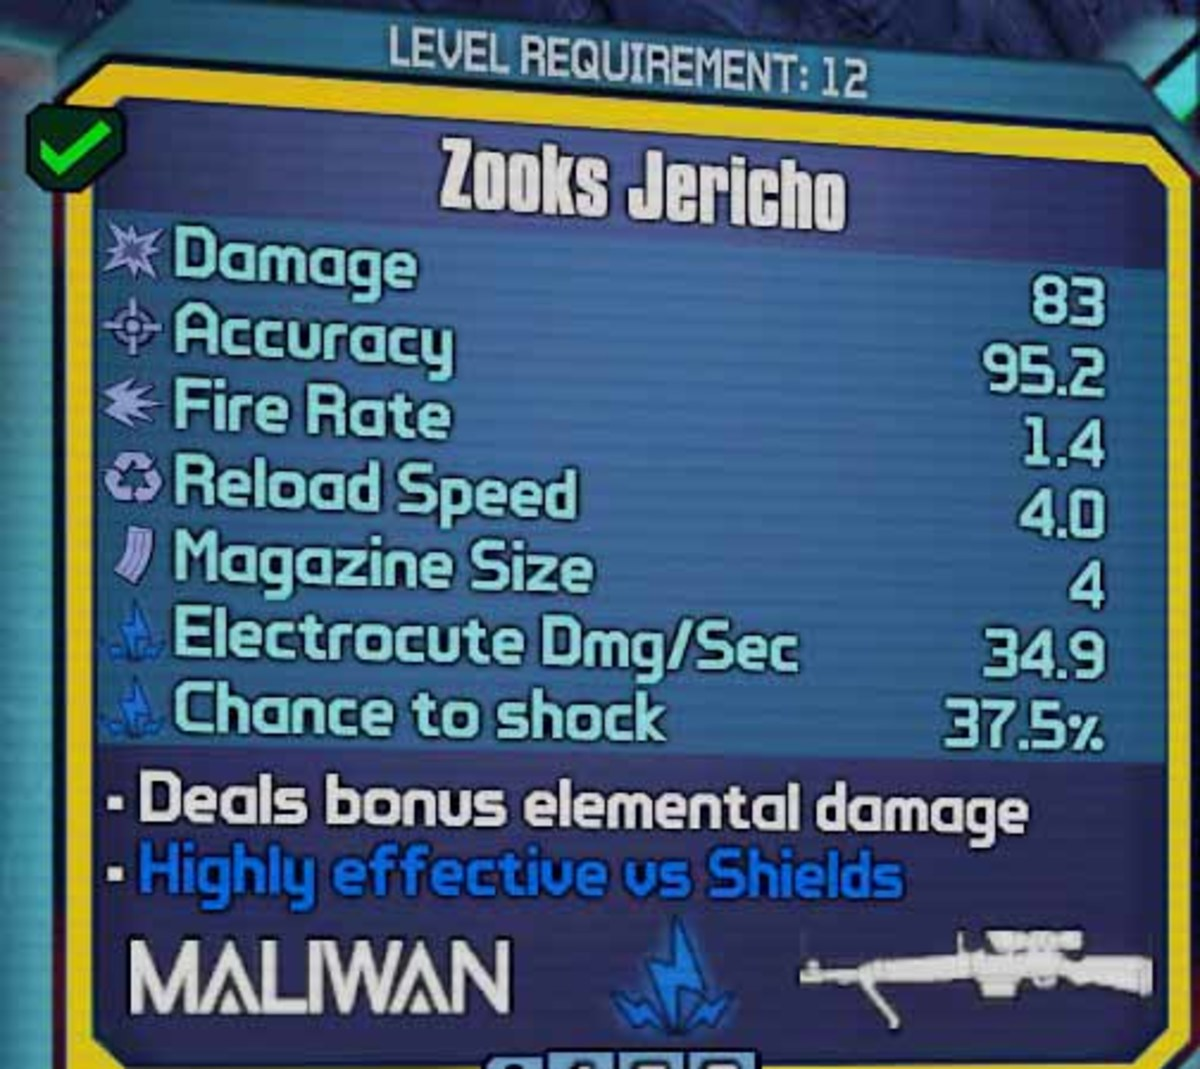 Borderlands 2 Zooks Jericho - an example of a electric elemental weapon to take down shields.